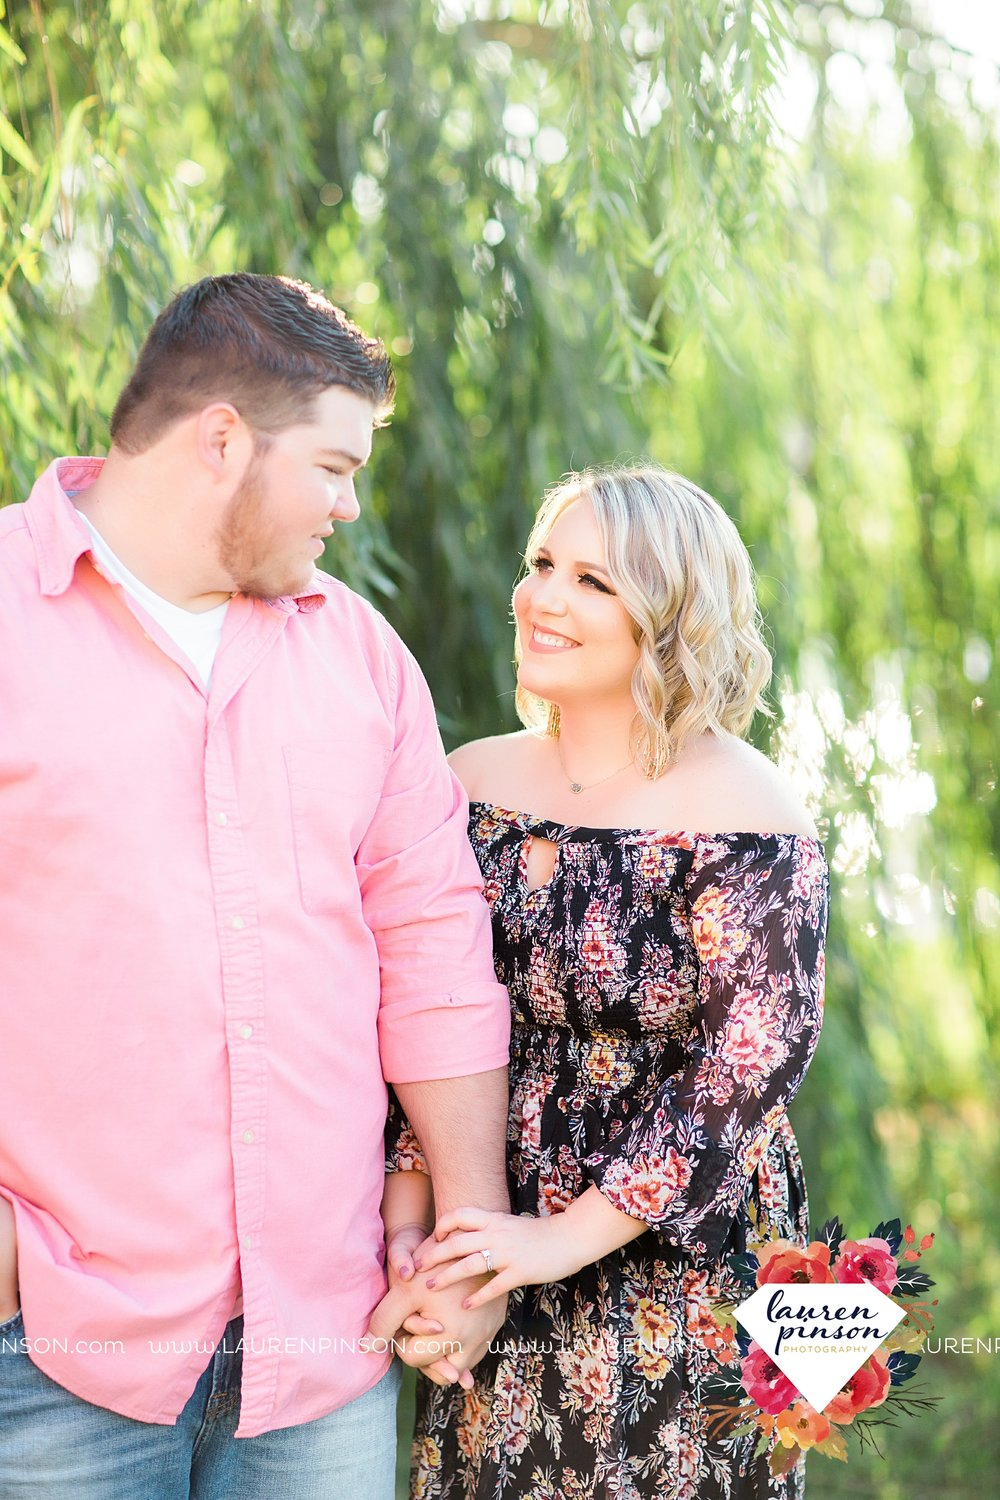 wichita-falls-engagement-and-wedding-photographer-lauren-pinson-photography_3644.jpg